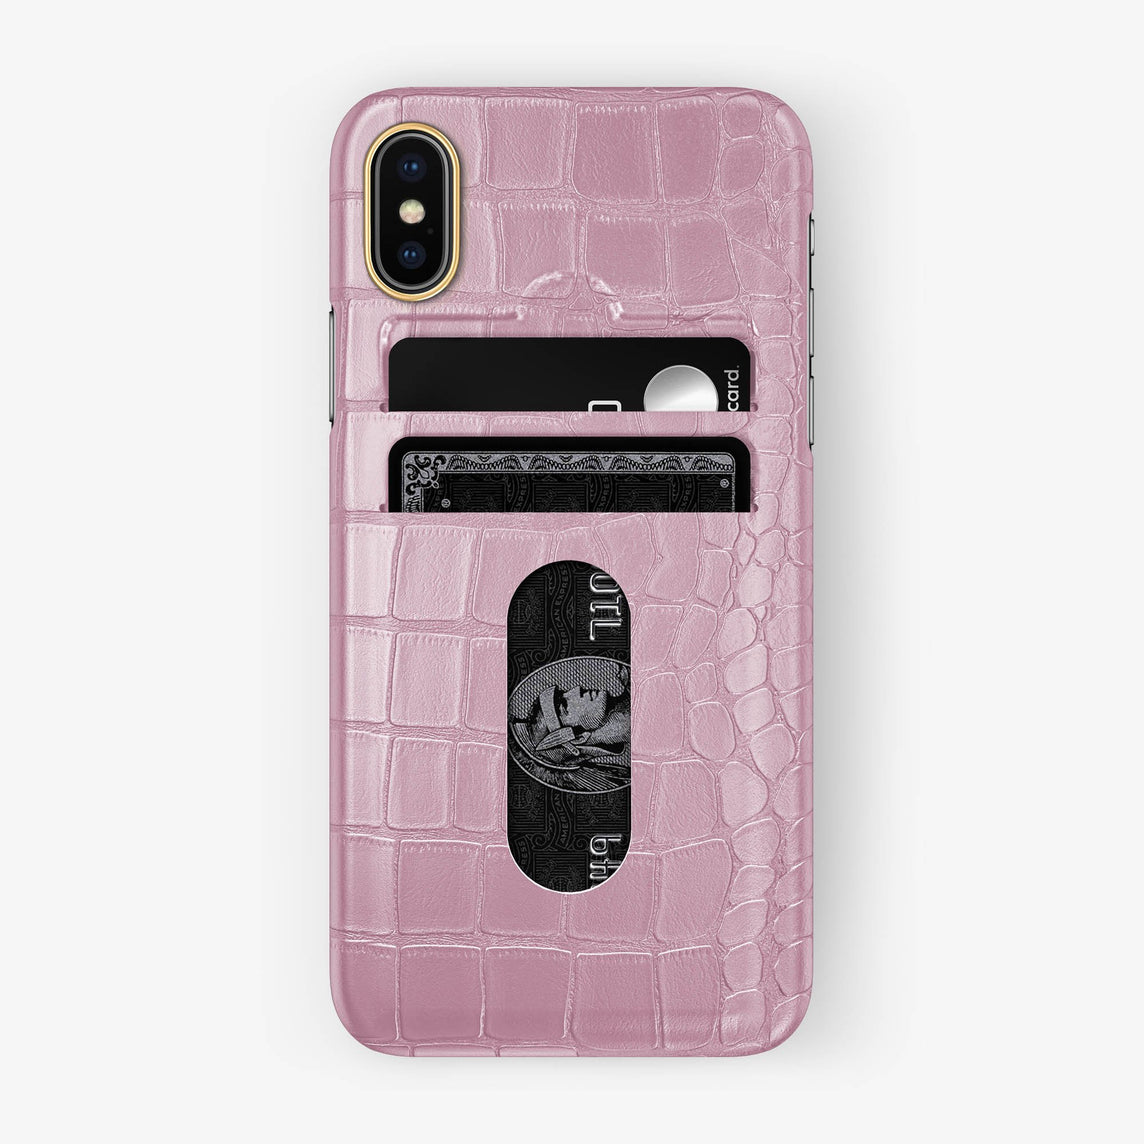 Alligator Card Holder Case iPhone Xs | Pink - Yellow Gold - Hadoro